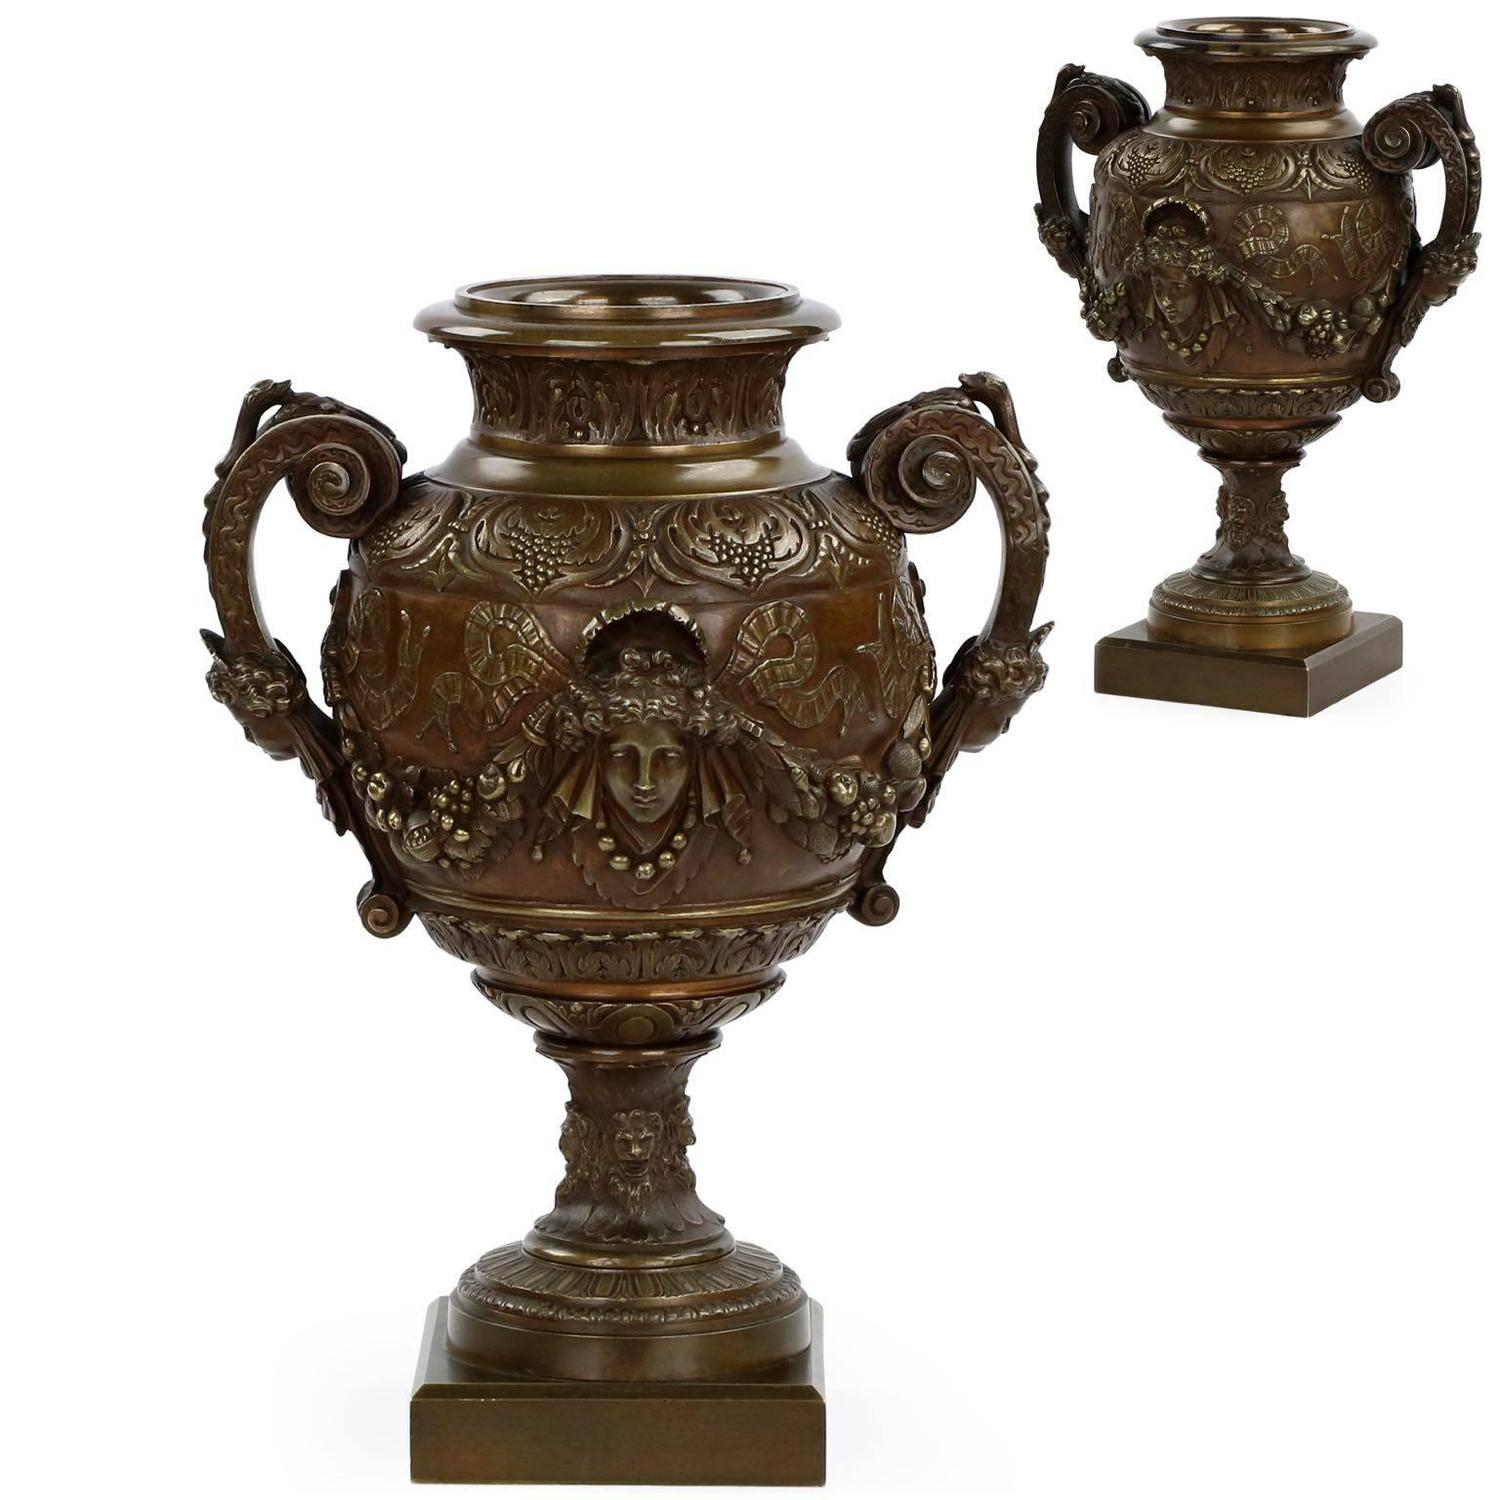 Pair of french napoleon iii antique bronze garniture urn vases pair of french napoleon iii antique bronze garniture urn vases 19th century for sale at 1stdibs reviewsmspy